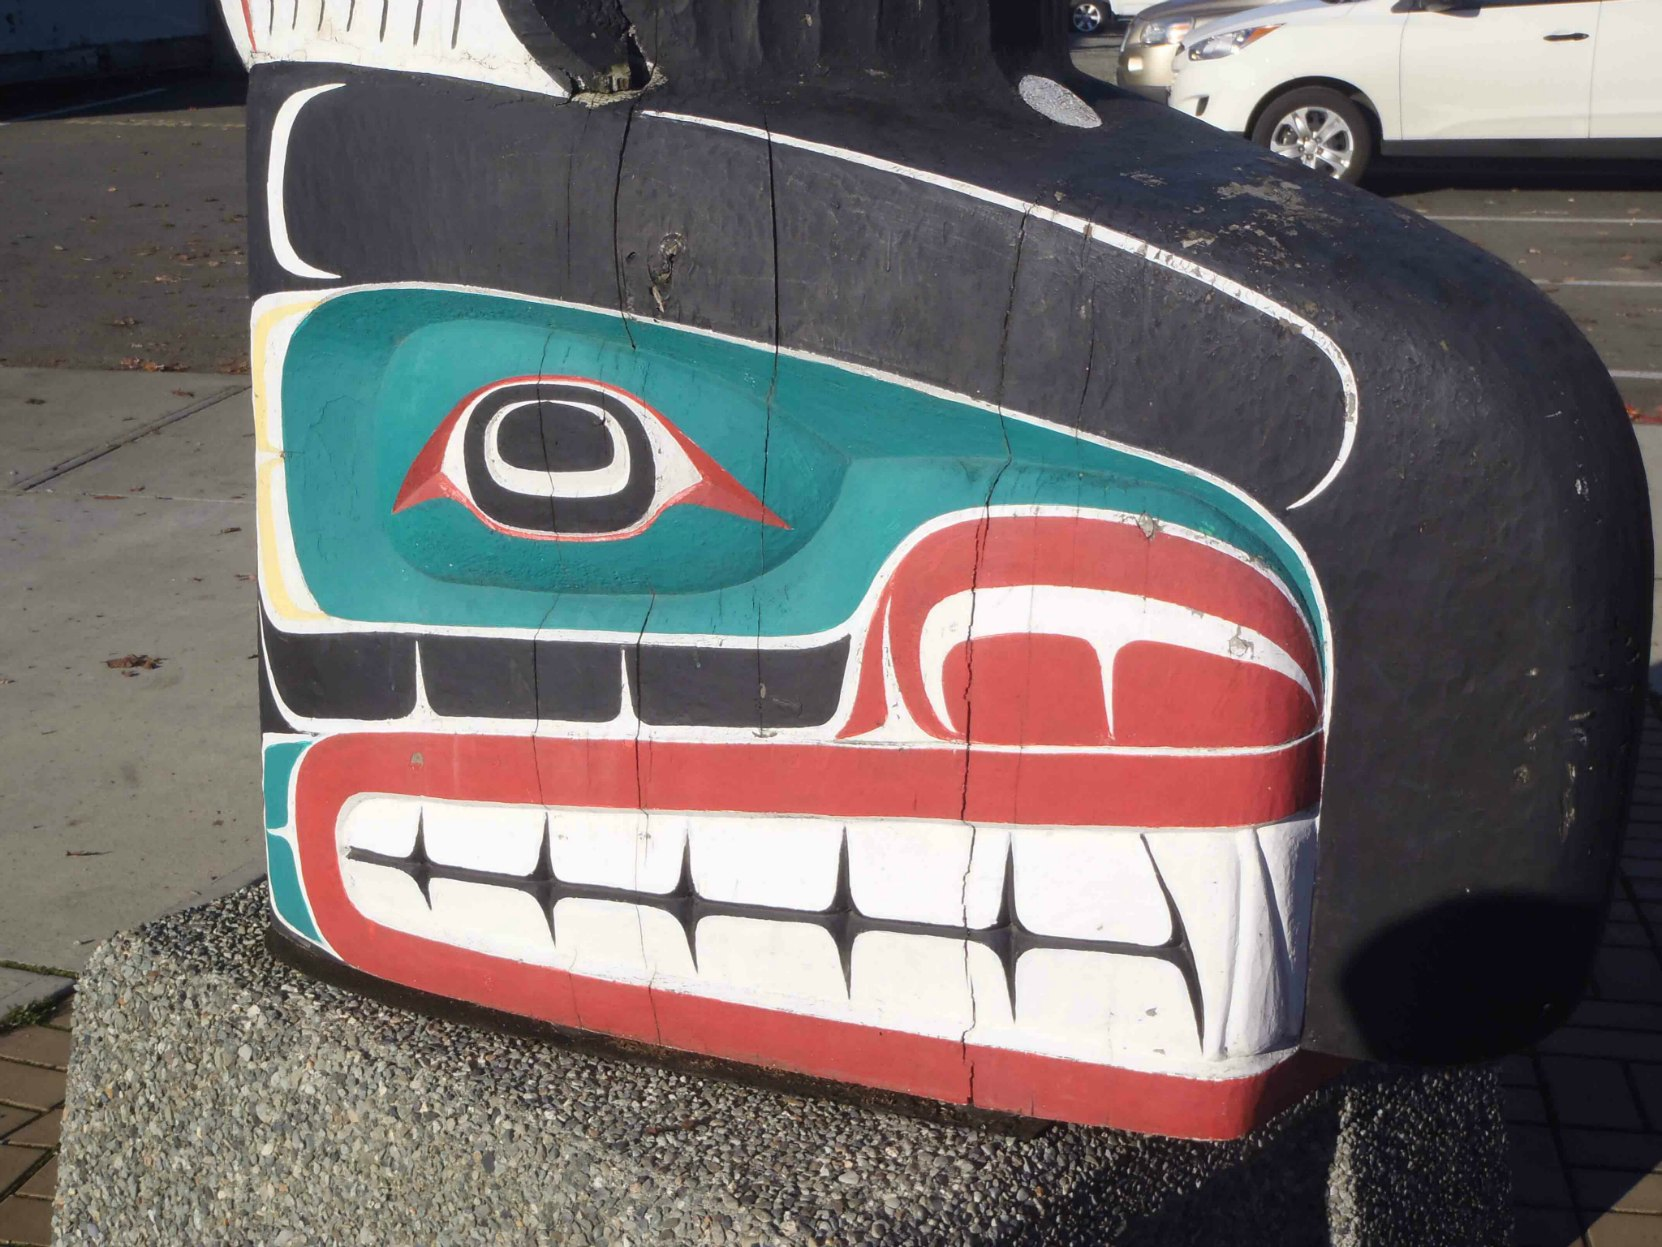 Sea and Sky pole, Killer Whale figure detail, Government Street at Station Street, Duncan, B.C.